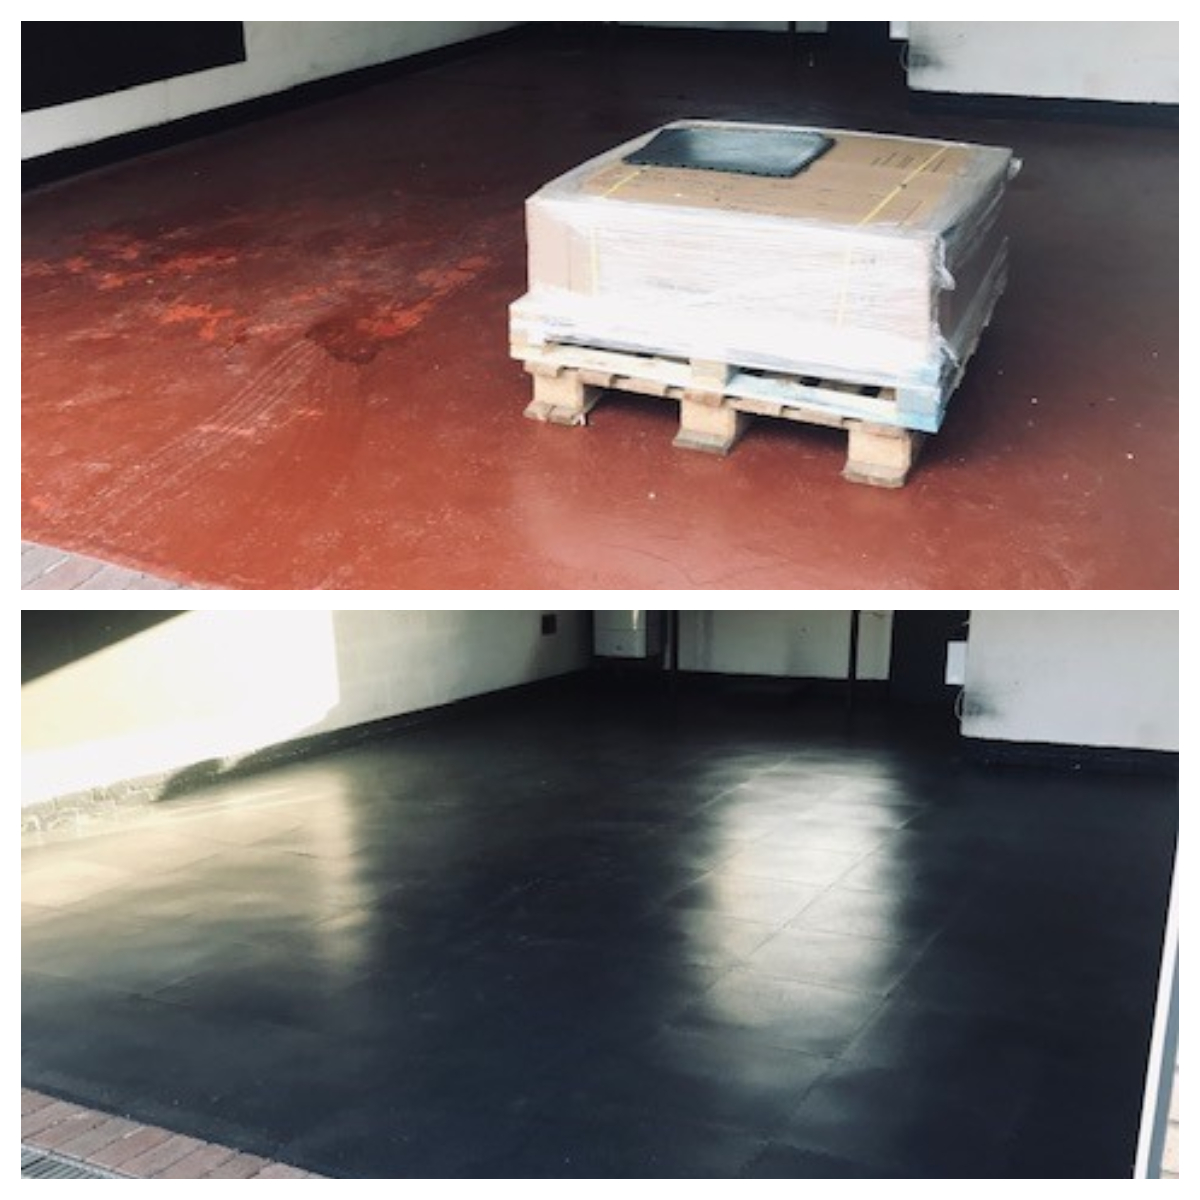 As with many customers, this floor had been looked after by painting - time and time again.  But now he has laid a lifetime solution in a matter of hours. Our PVC interlocking tiles, EvoTile.